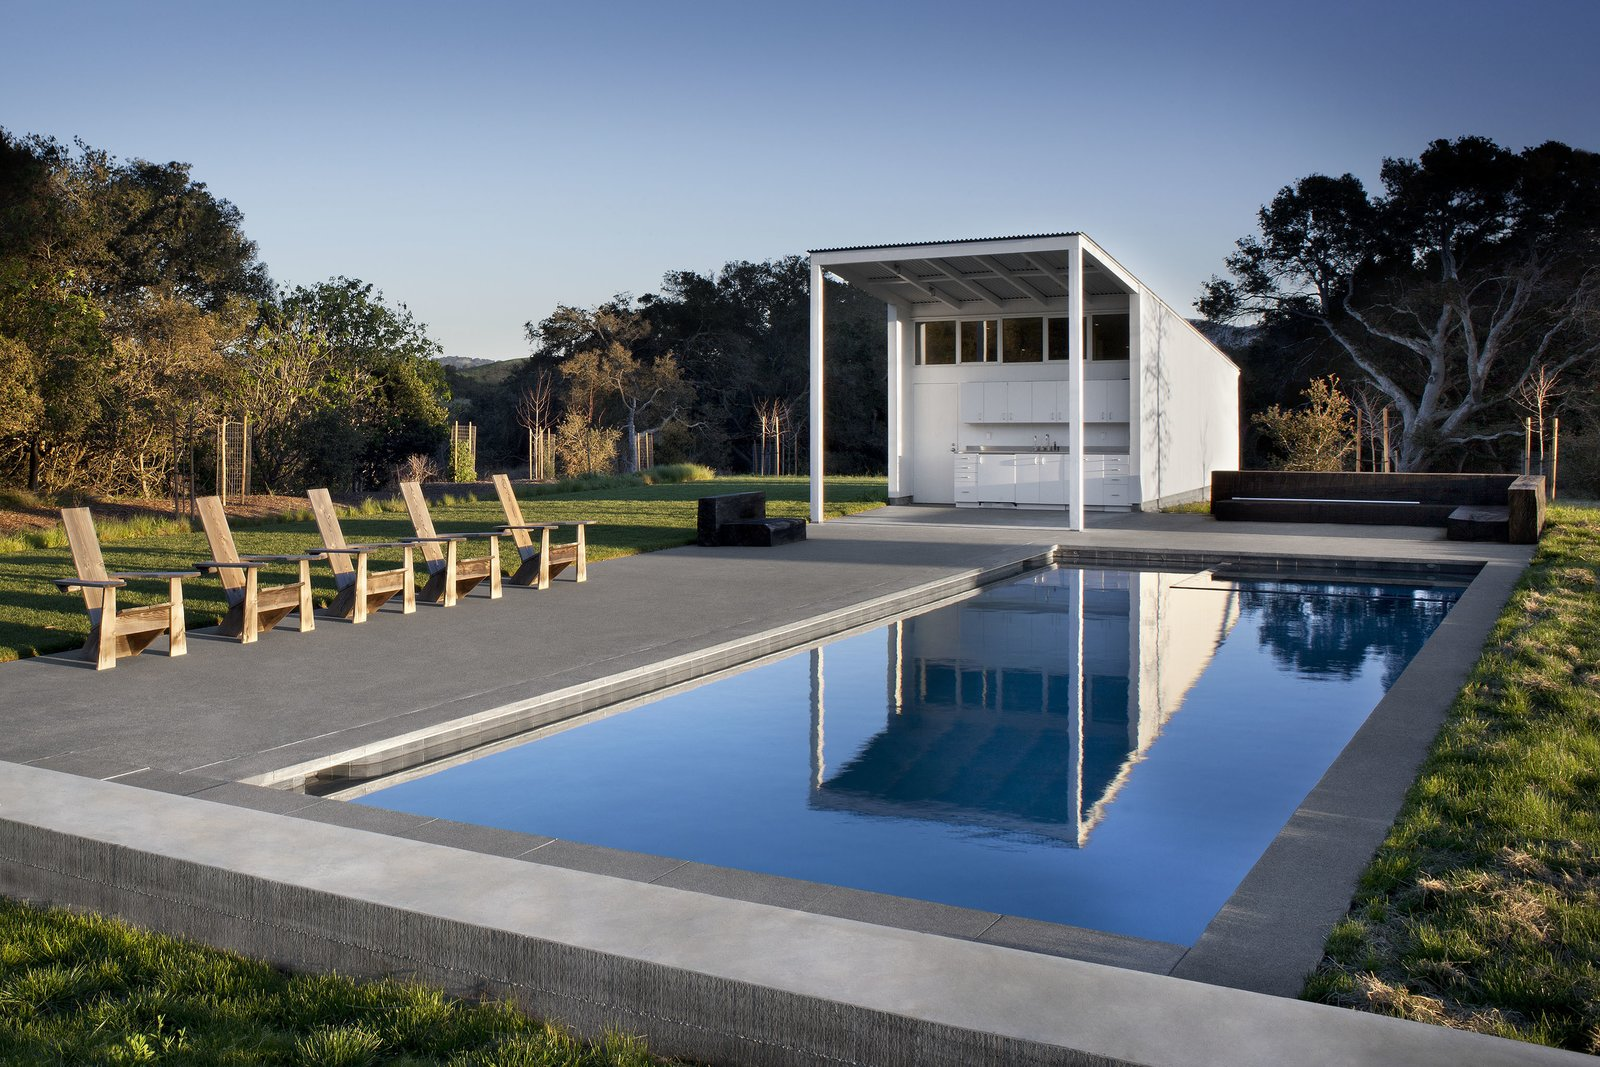 Outdoor, Trees, Grass, Swimming Pools, Tubs, Shower, Back Yard, Large Pools, Tubs, Shower, Large Patio, Porch, Deck, and Concrete Patio, Porch, Deck #TurnbullGriffinHaesloop #exterior #poolhouse #pool #kitchenette #landscape   Hupomone Ranch by Turnbull Griffin Haesloop Architects